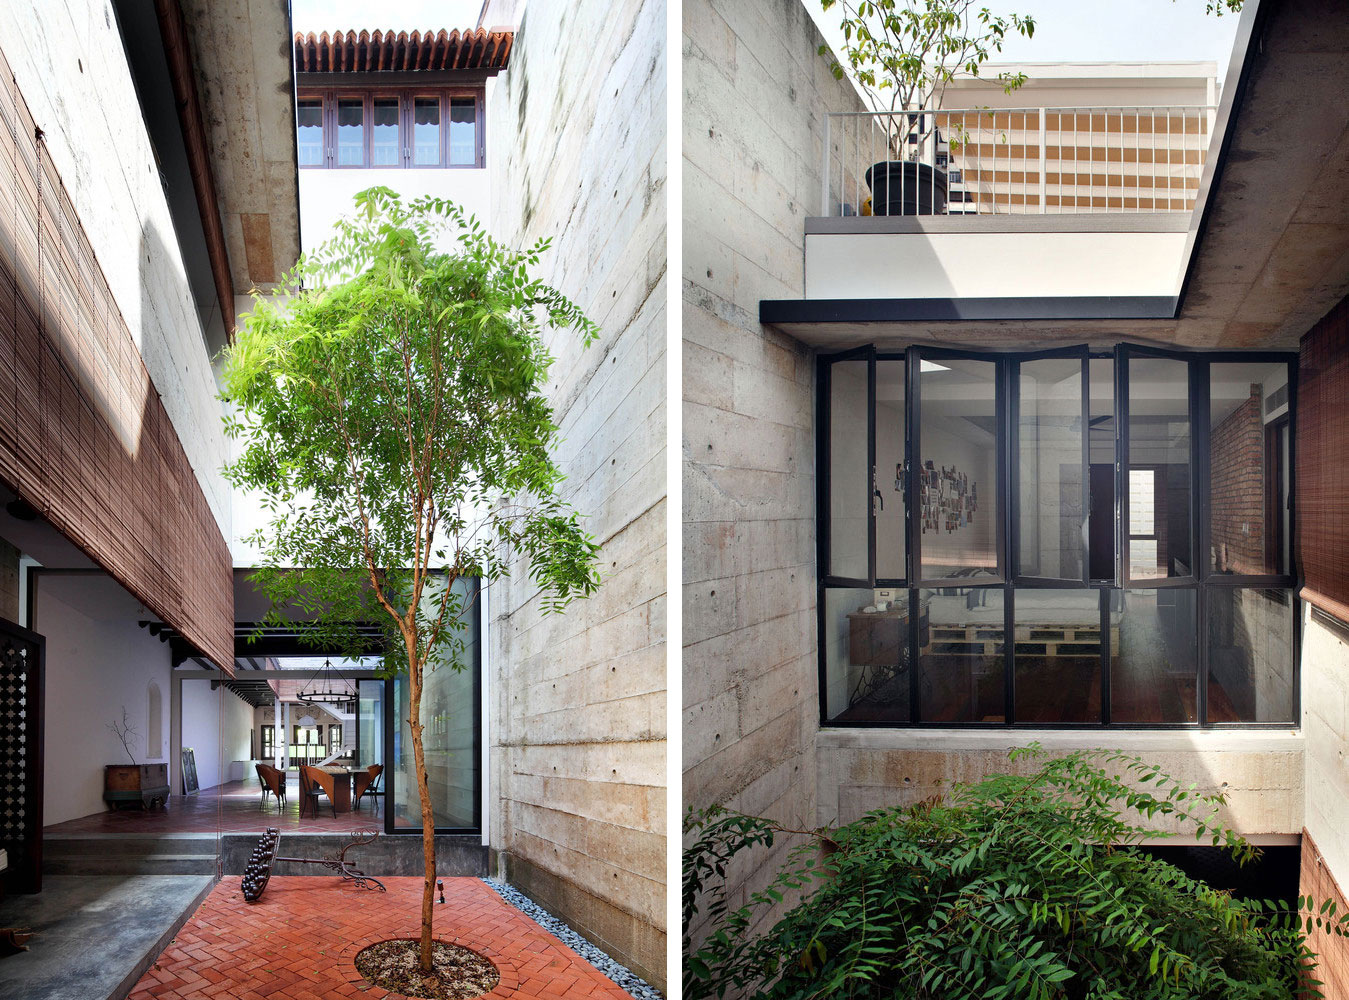 the tree inside the building